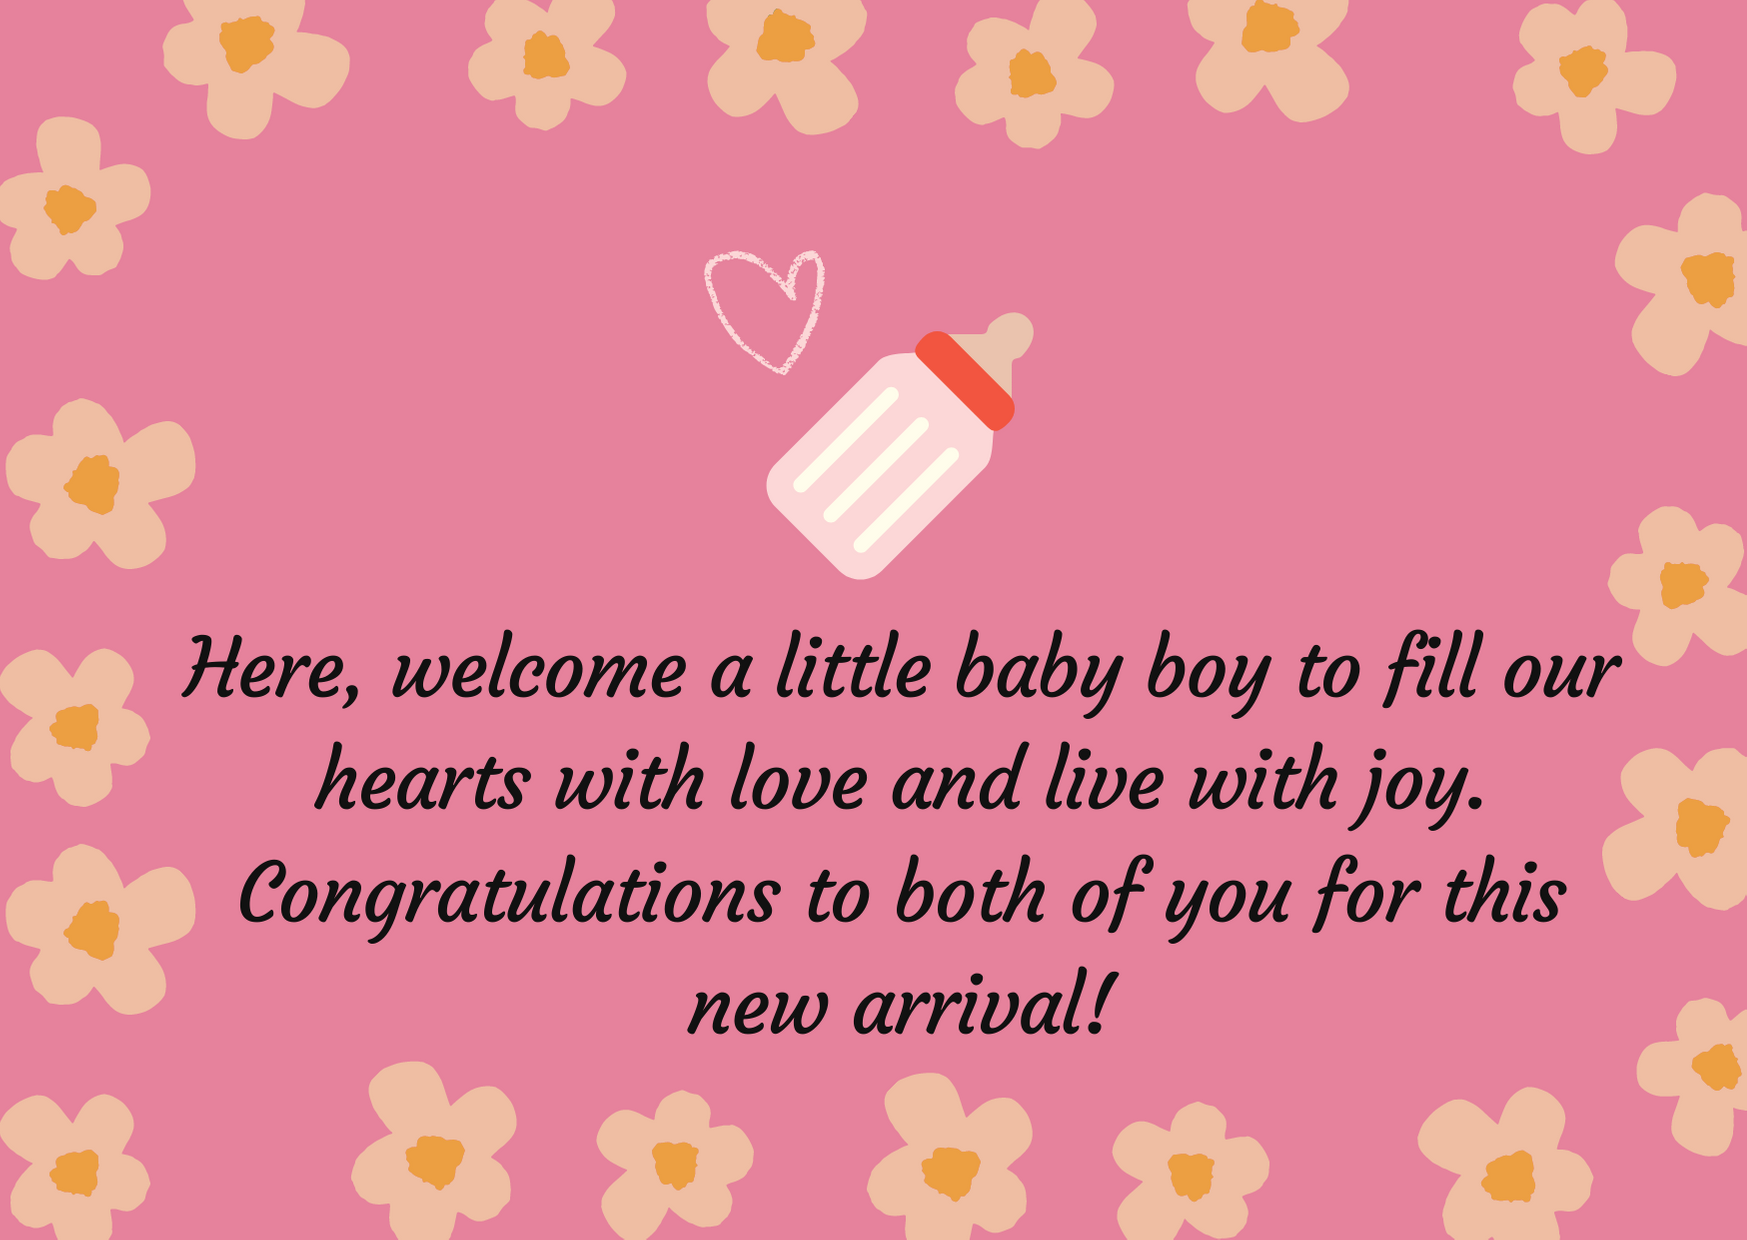 New baby boy wishes to parents